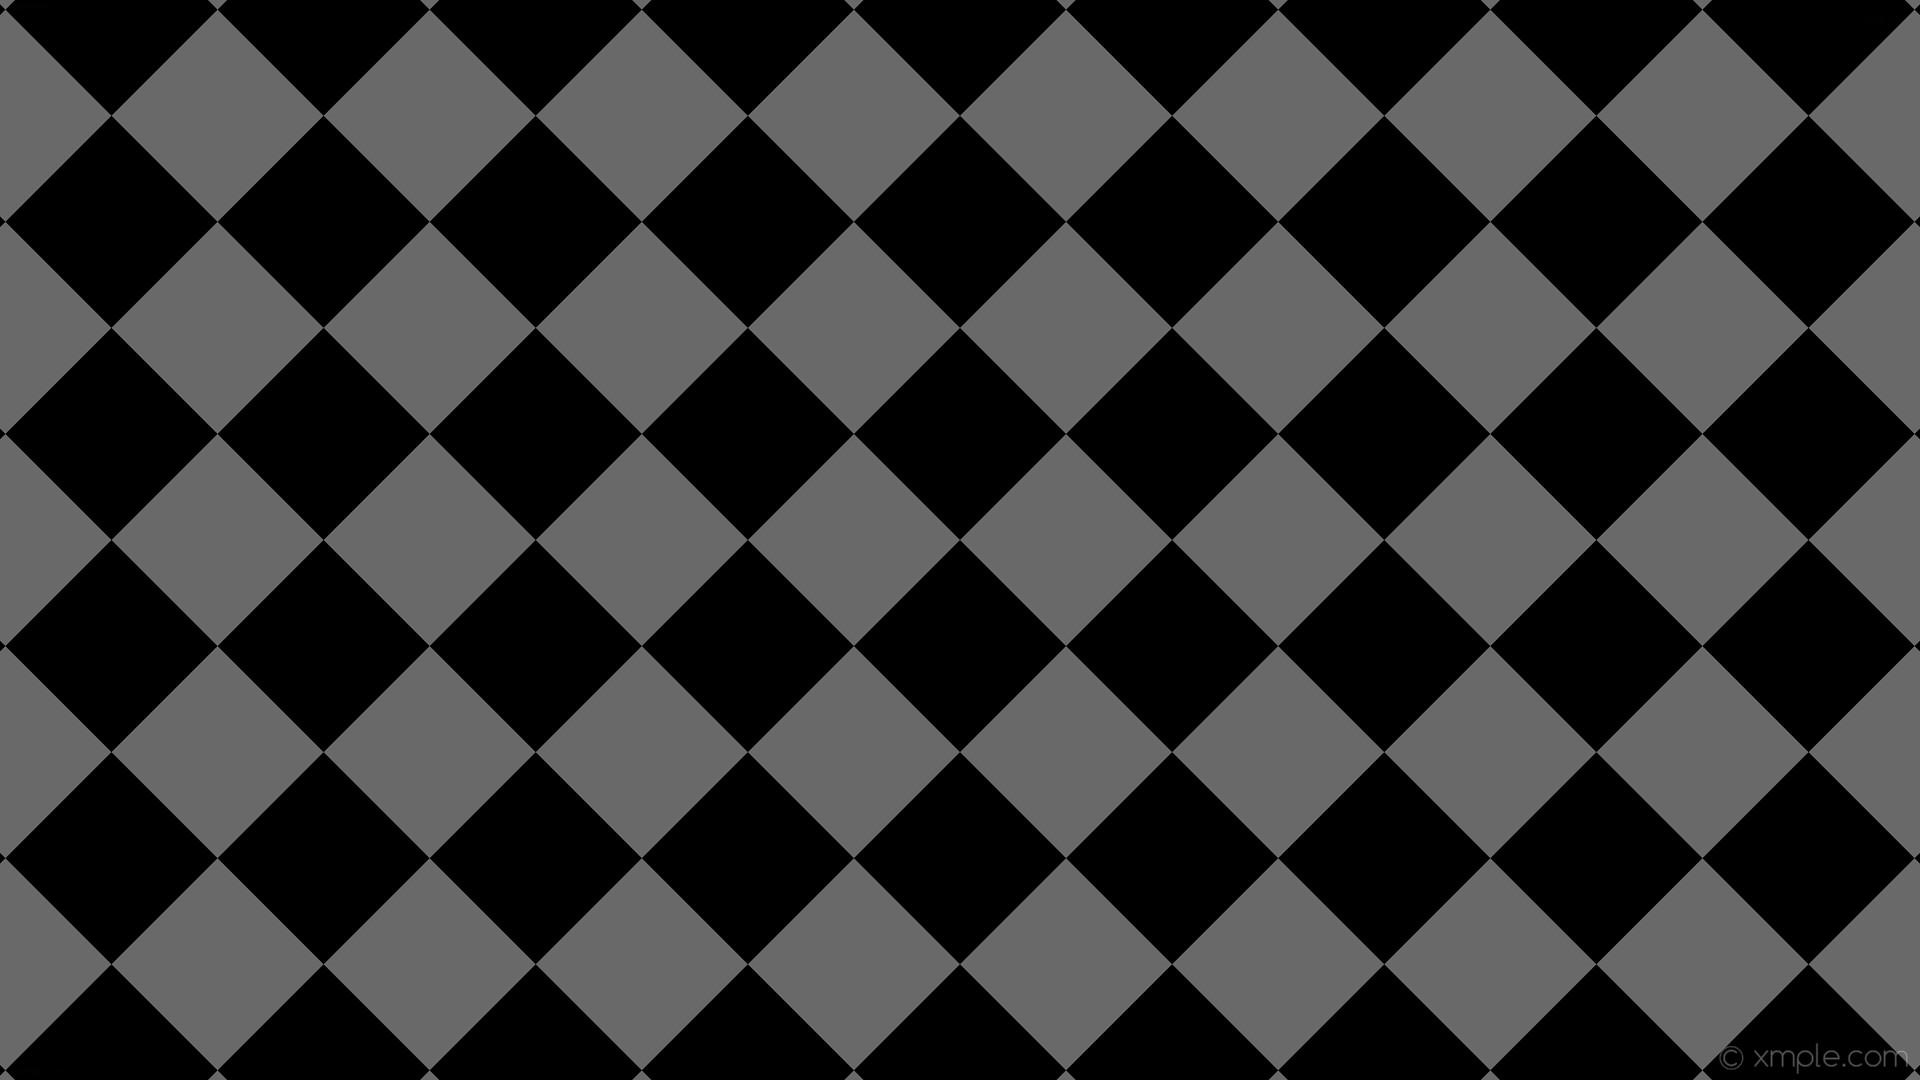 1920x1080 wallpaper checkered black squares grey dim gray #696969 #000000 diagonal  45° 150px